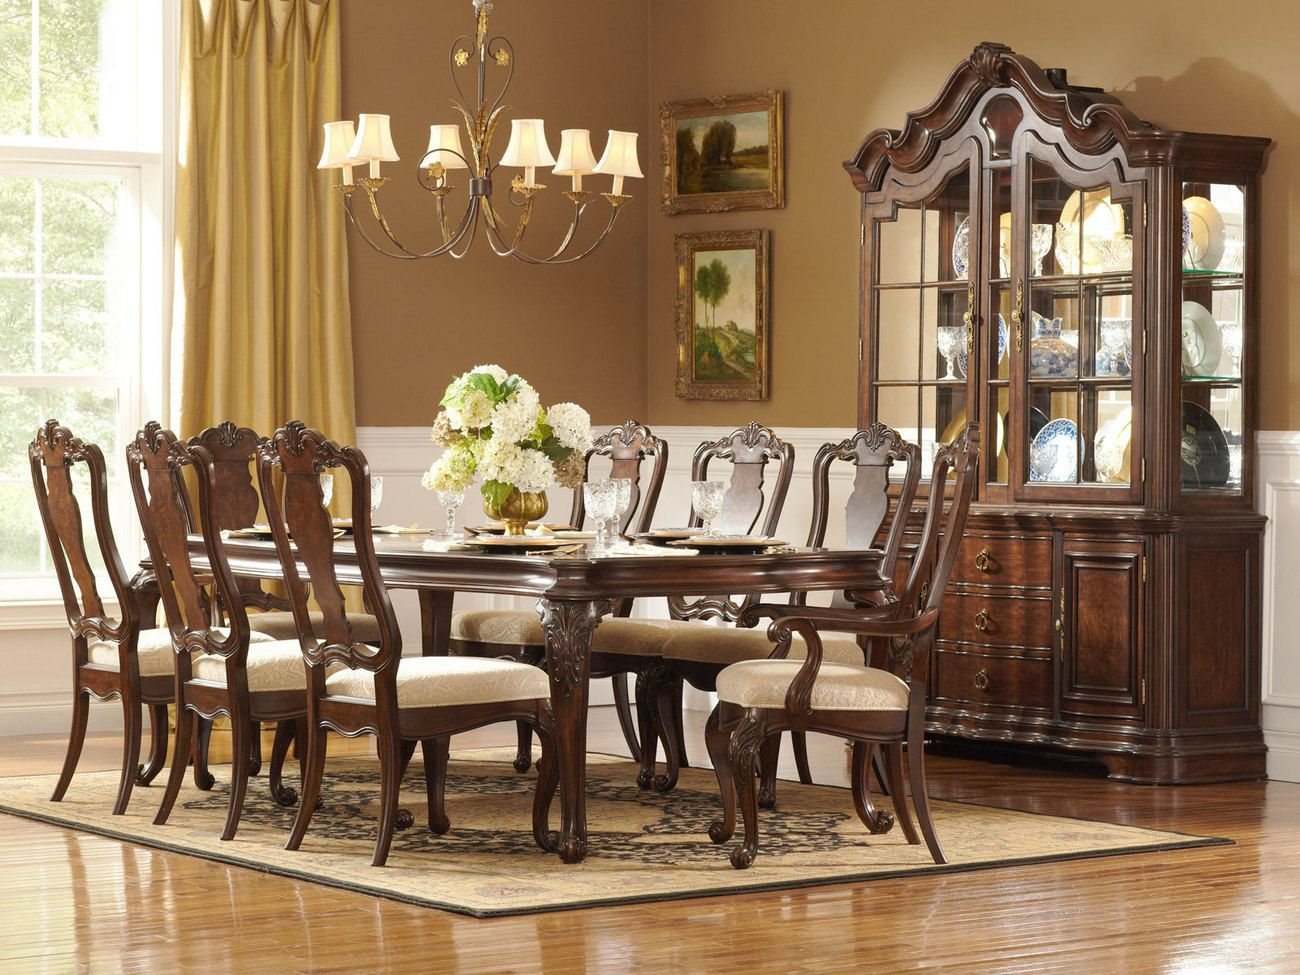 Traditional Dining Room Chairs With Dining Room Sets Small Traditional Dining Room